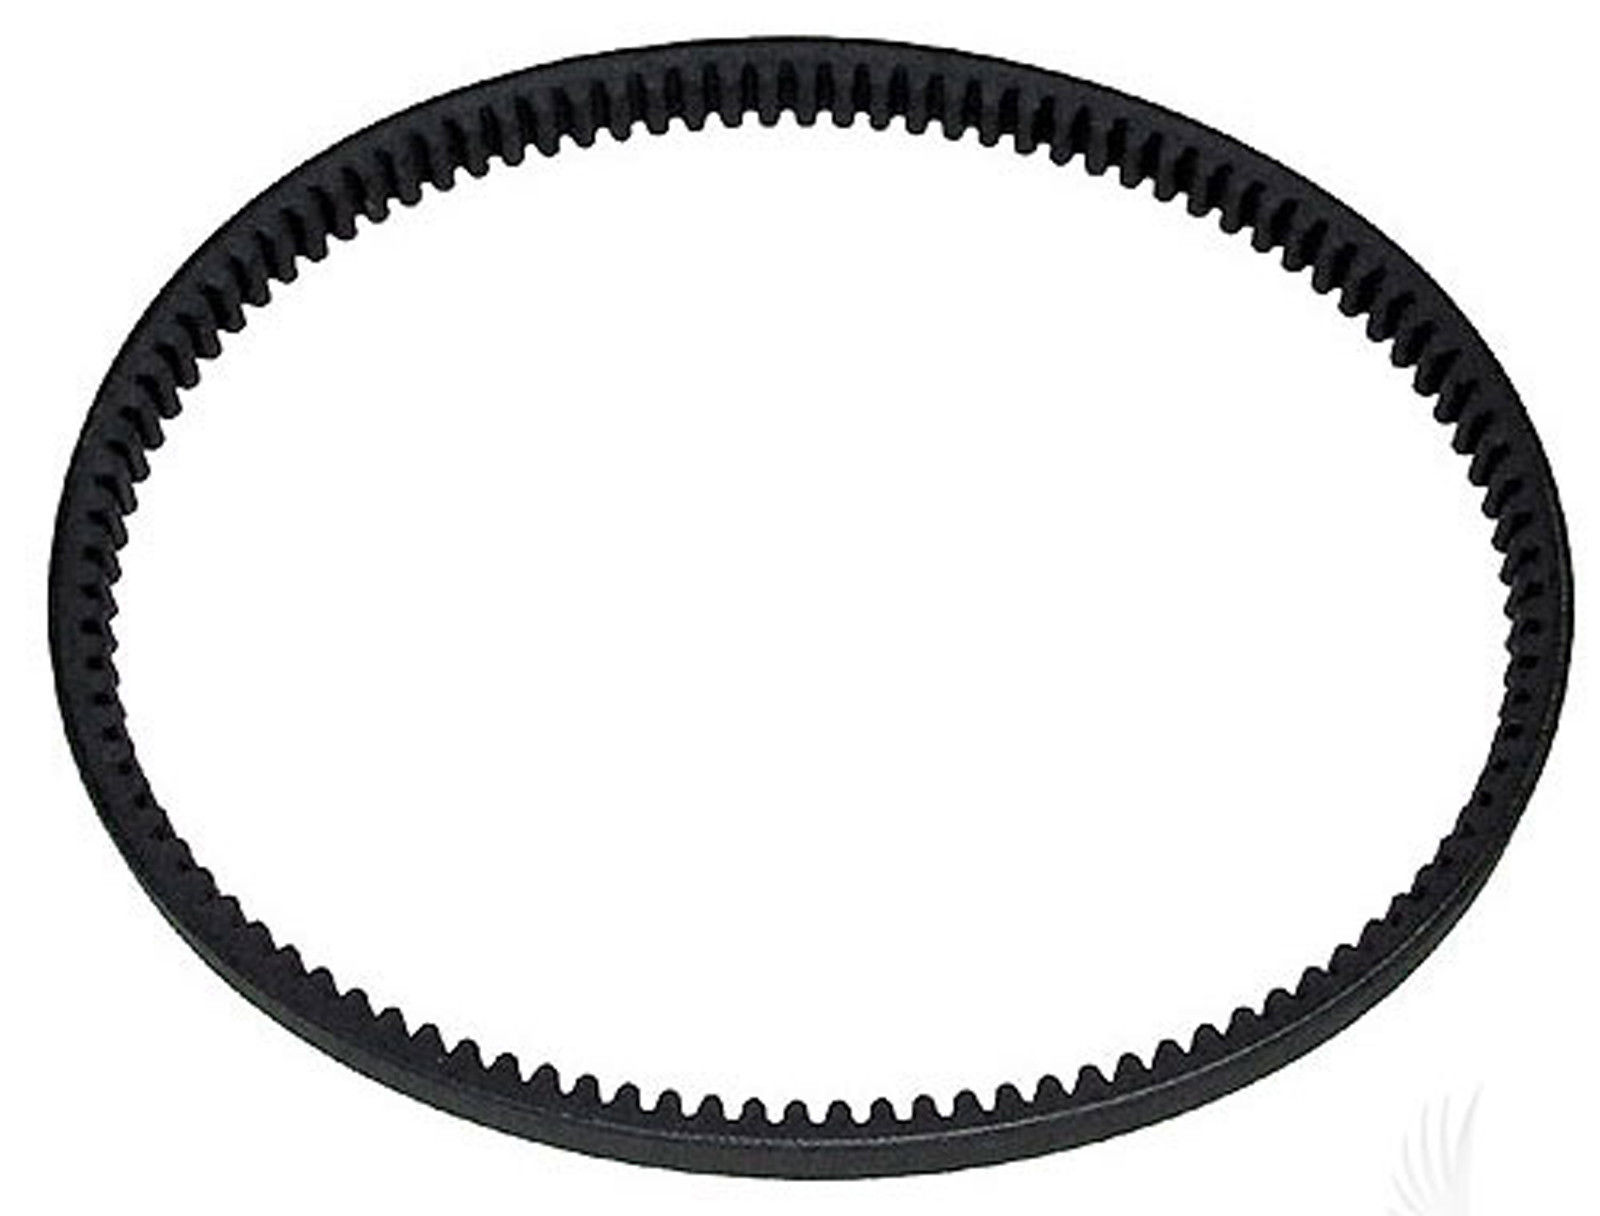 EZGO Marathon (1988 Only) Gas Golf Cart Clutch Drive Belt